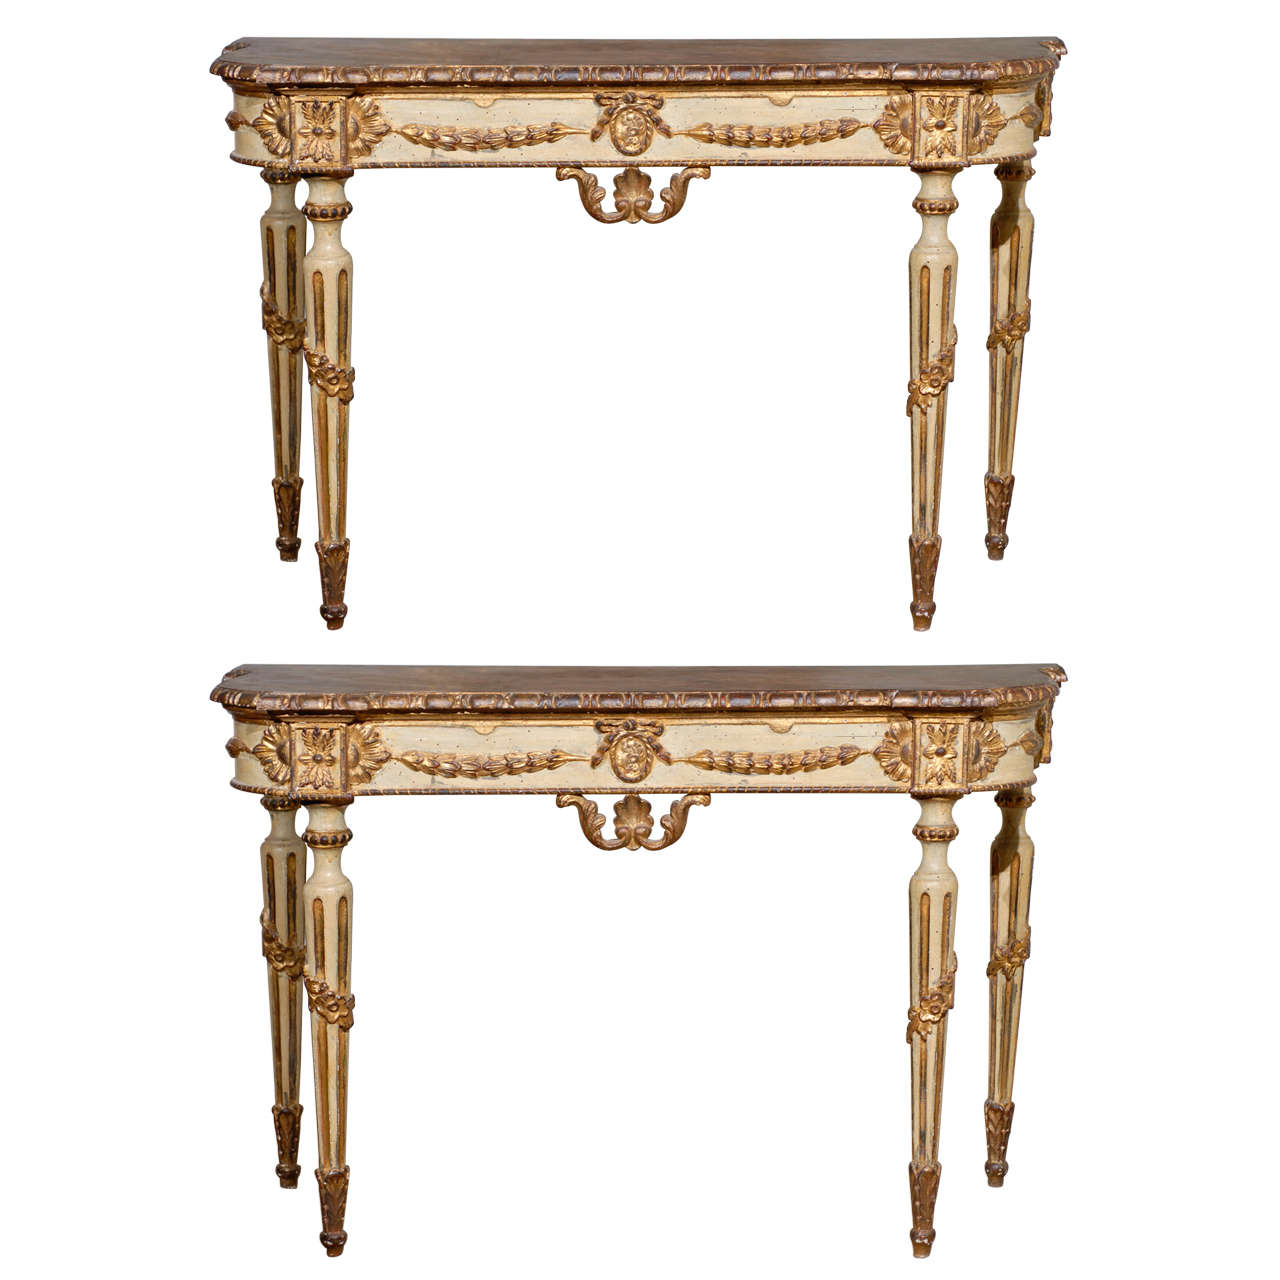 Pair of Painted Neoclassical Style Console Tables